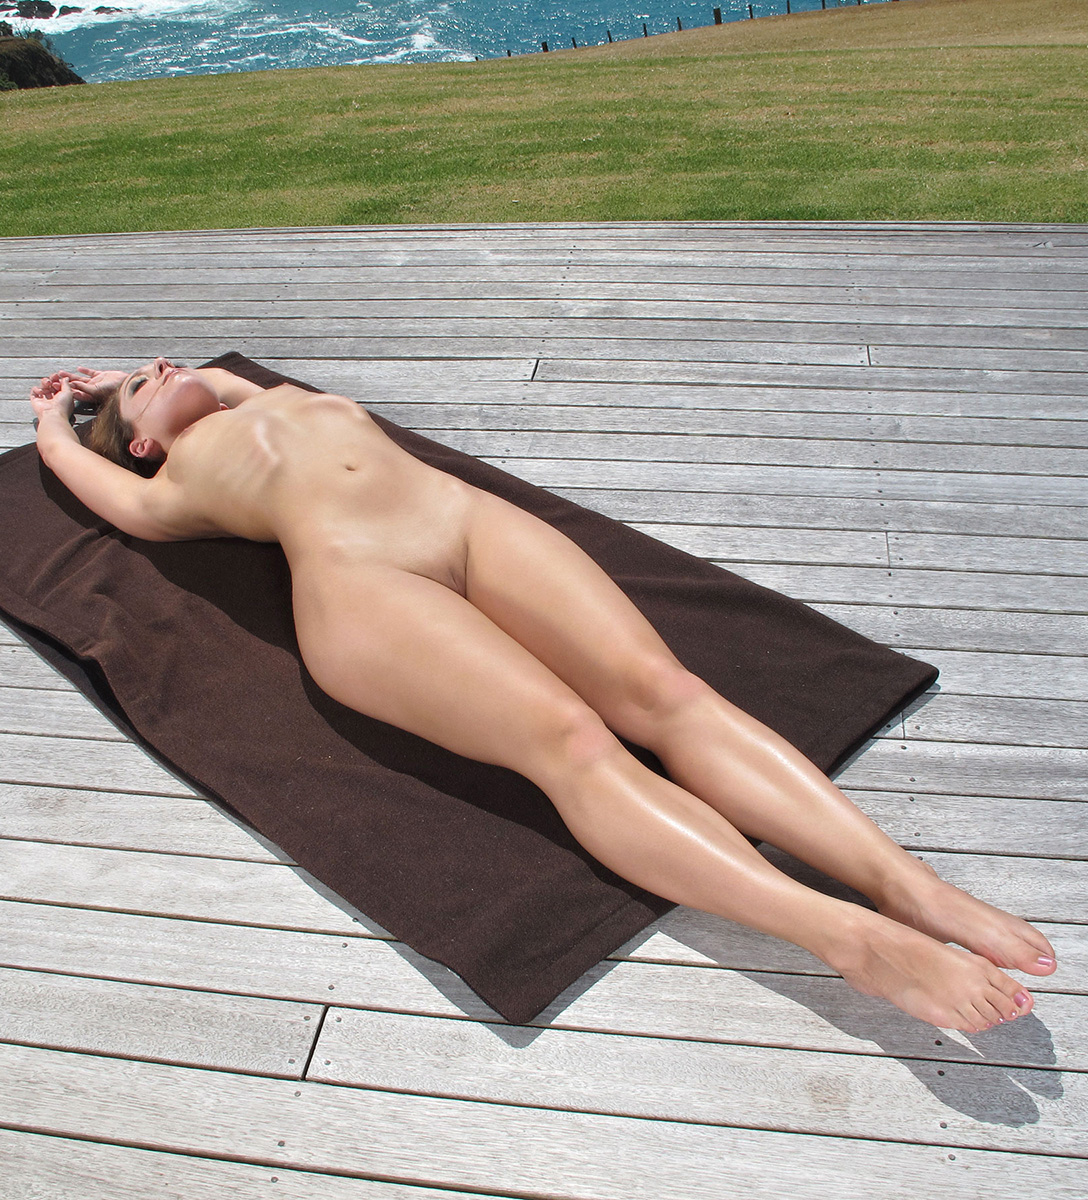 Amusing Nude yoga girl booty opinion obvious